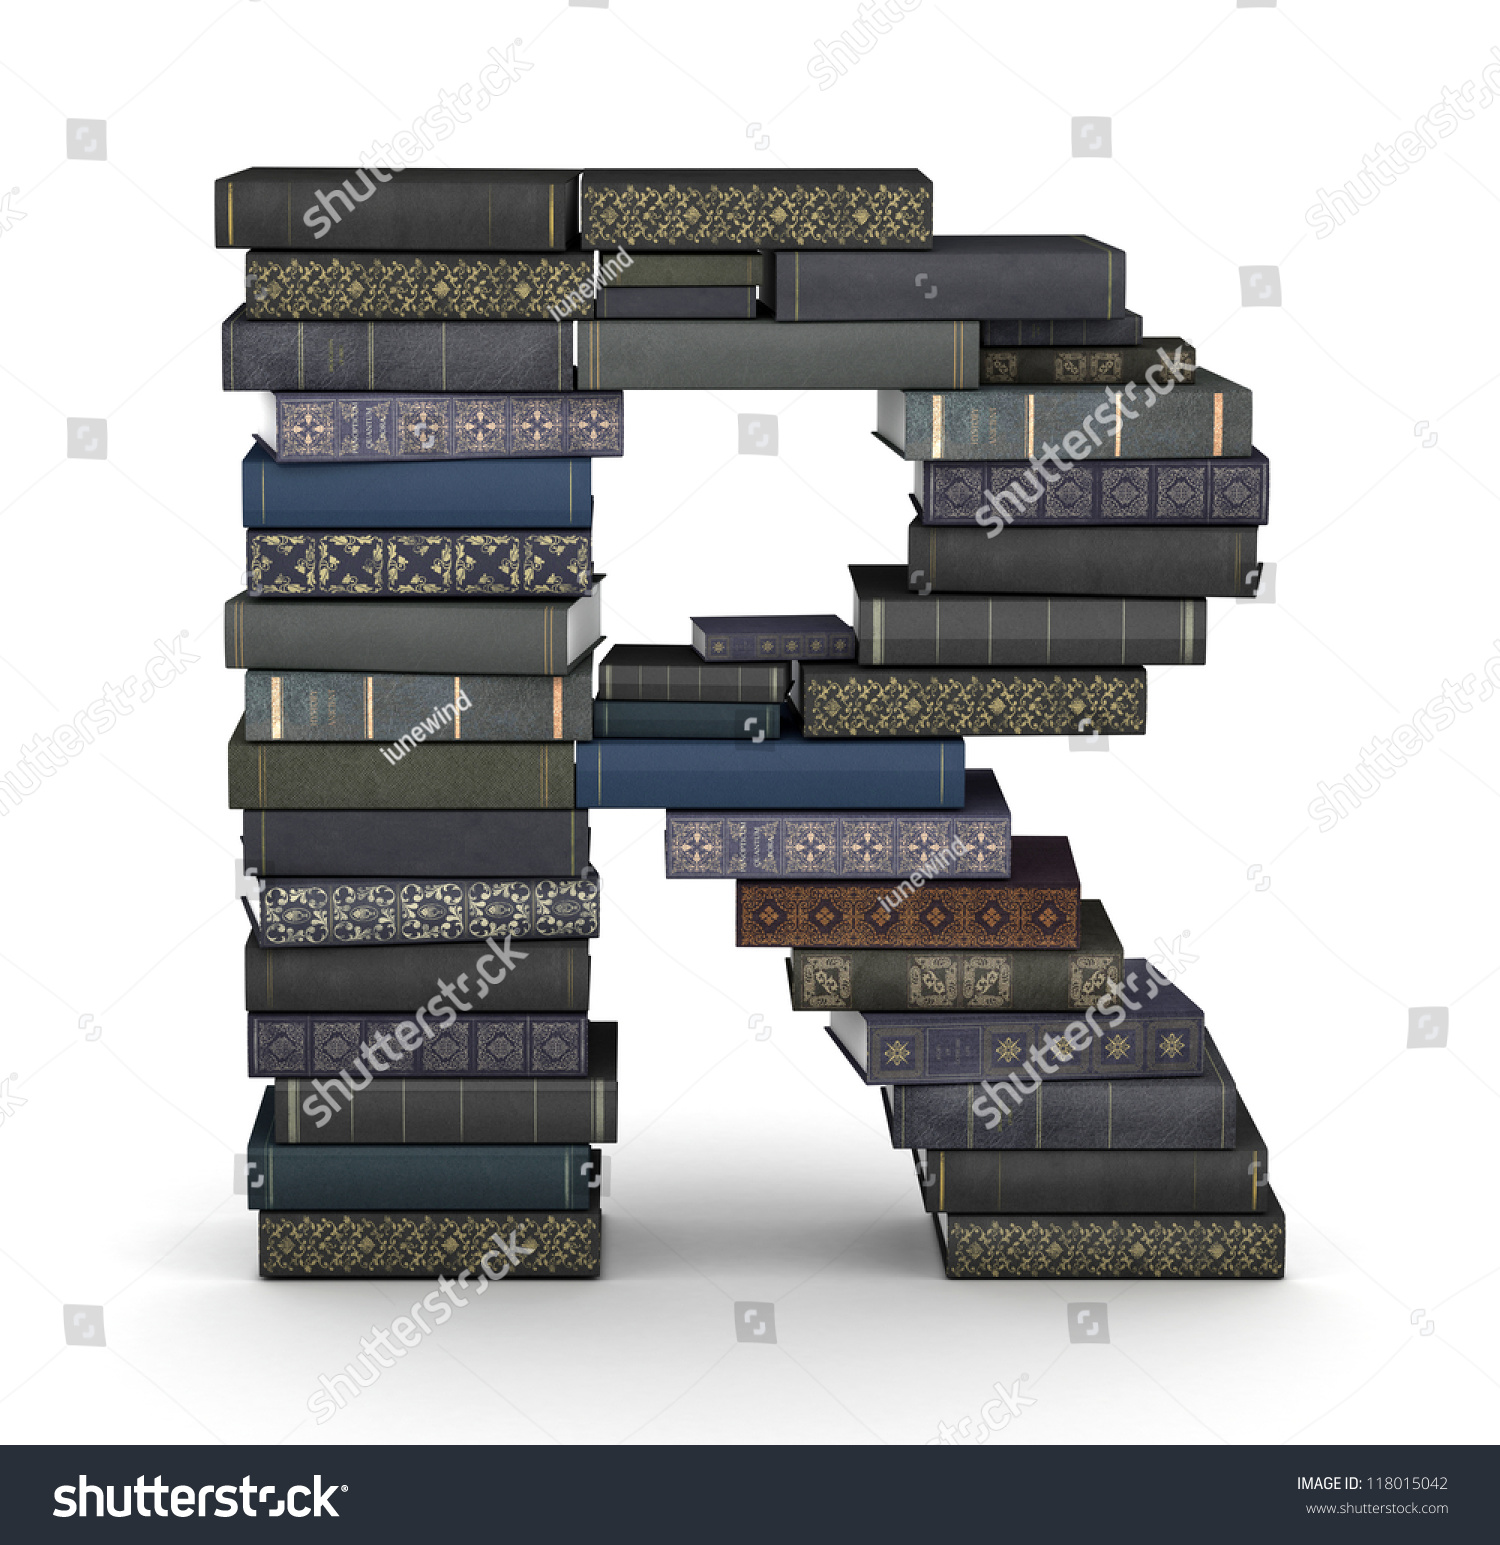 Letter R, Stacked From Many Books In Pile Stock Photo 118015042 : Shutterstock